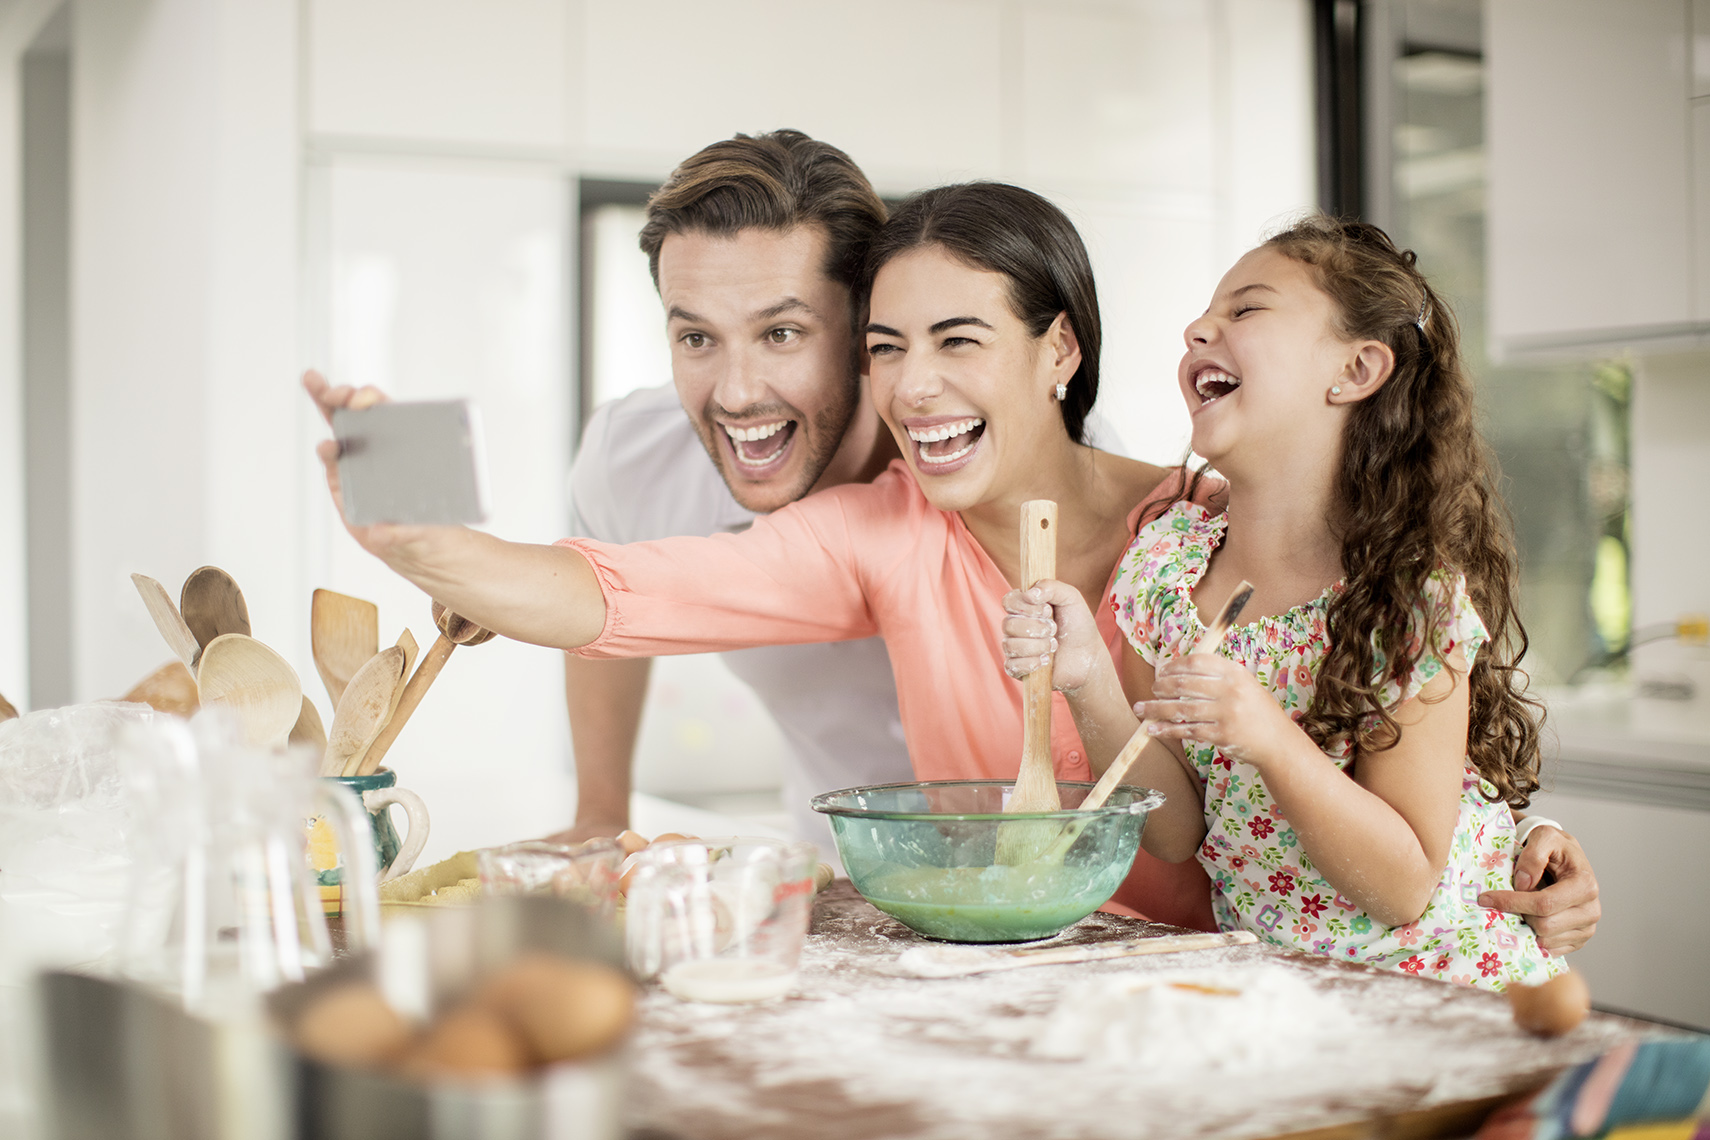 lifestyle-family-baking-kitchen-Colgate_cocina_1012